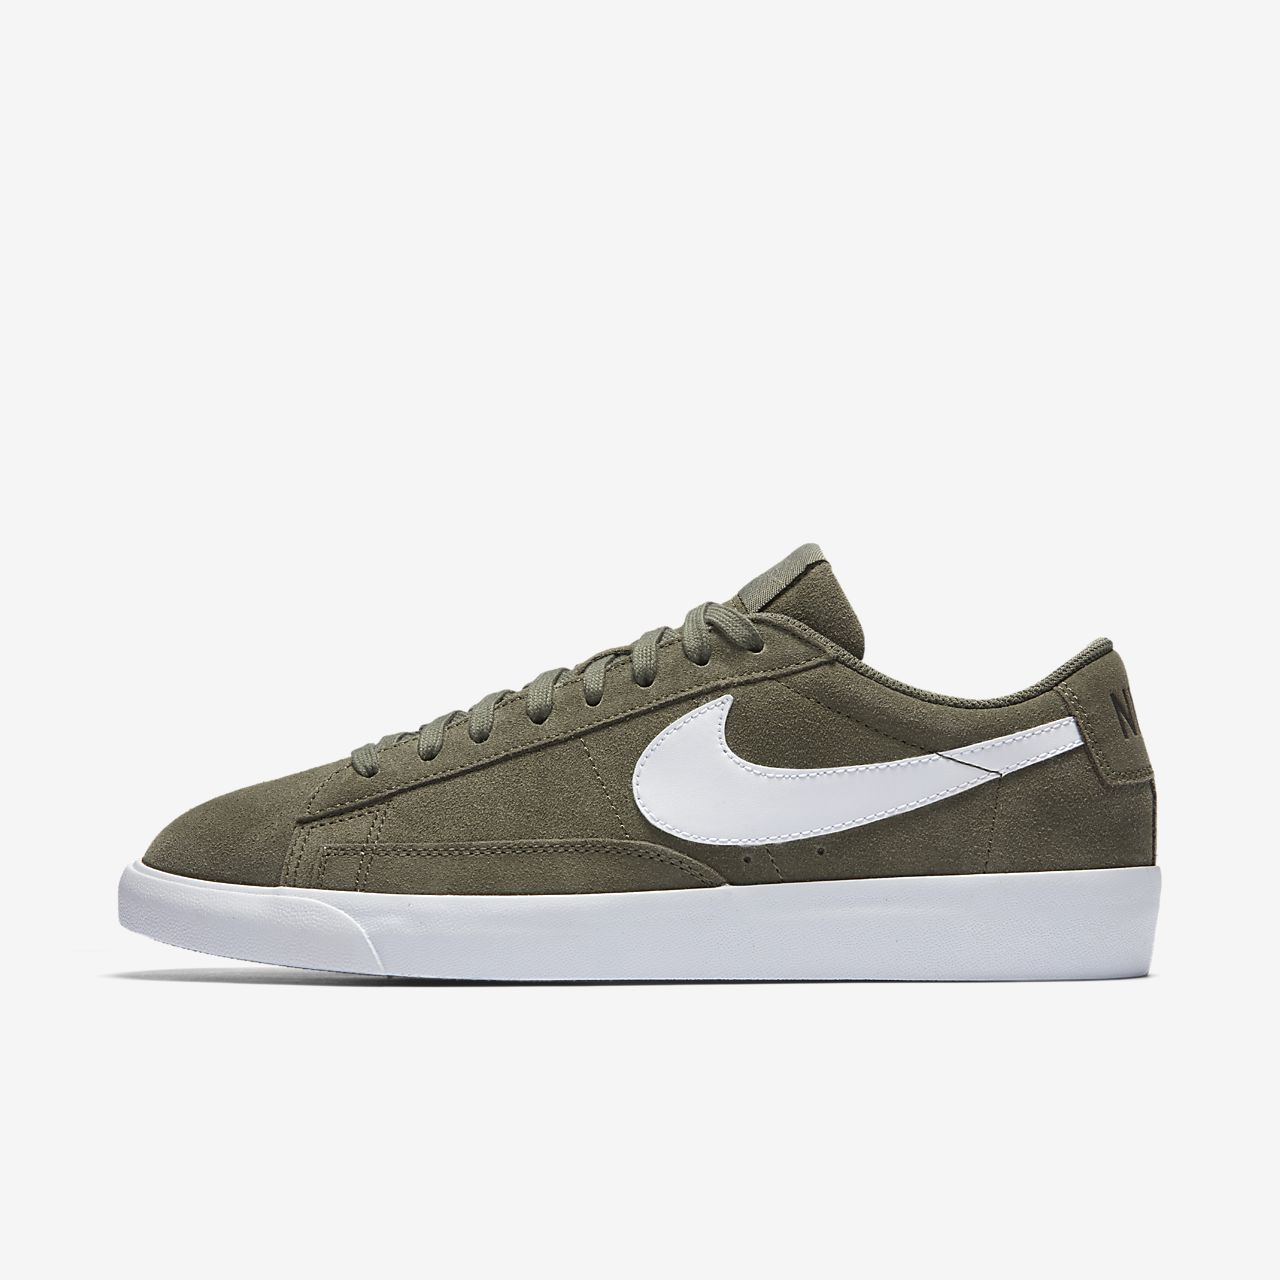 Nike Blazer Low Mens Shoe